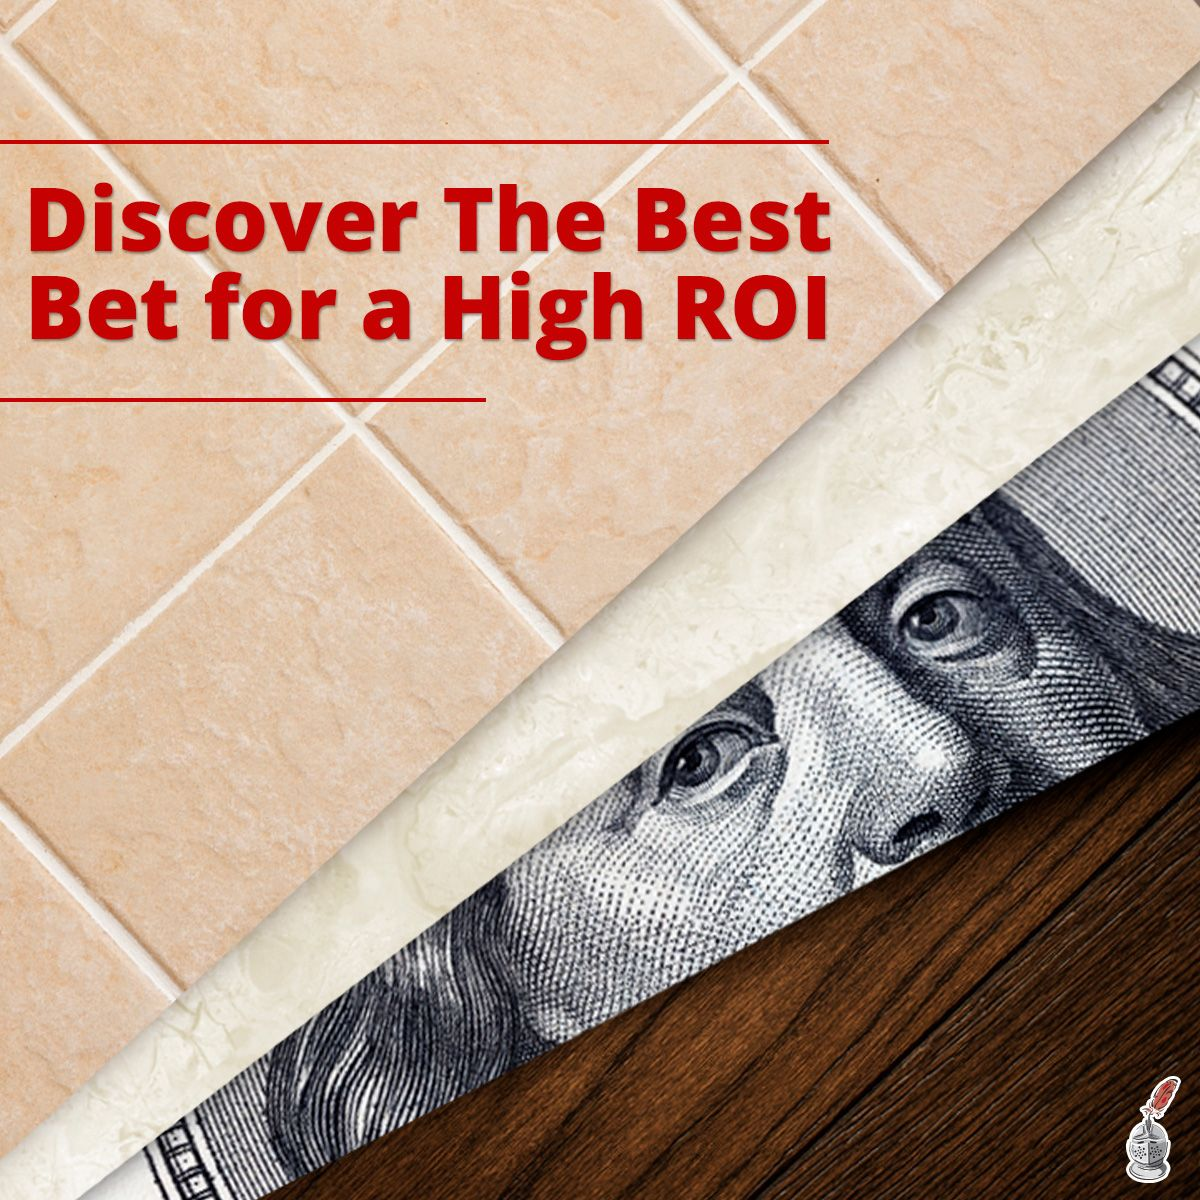 Discover The Best Bet for a High ROI